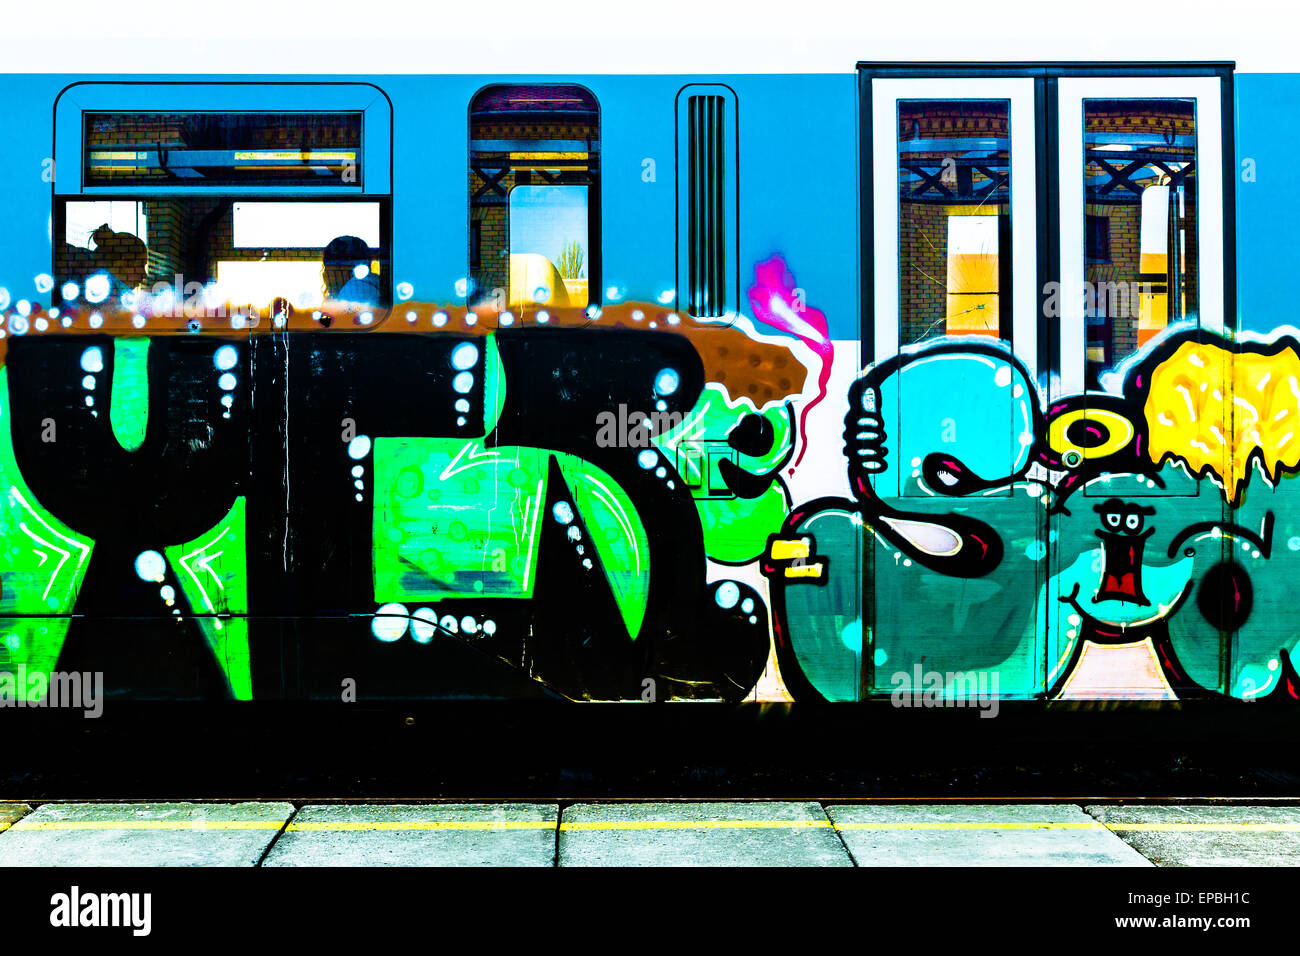 Graffiti on the side of a Serbian train at Vrsac station - Stock Image